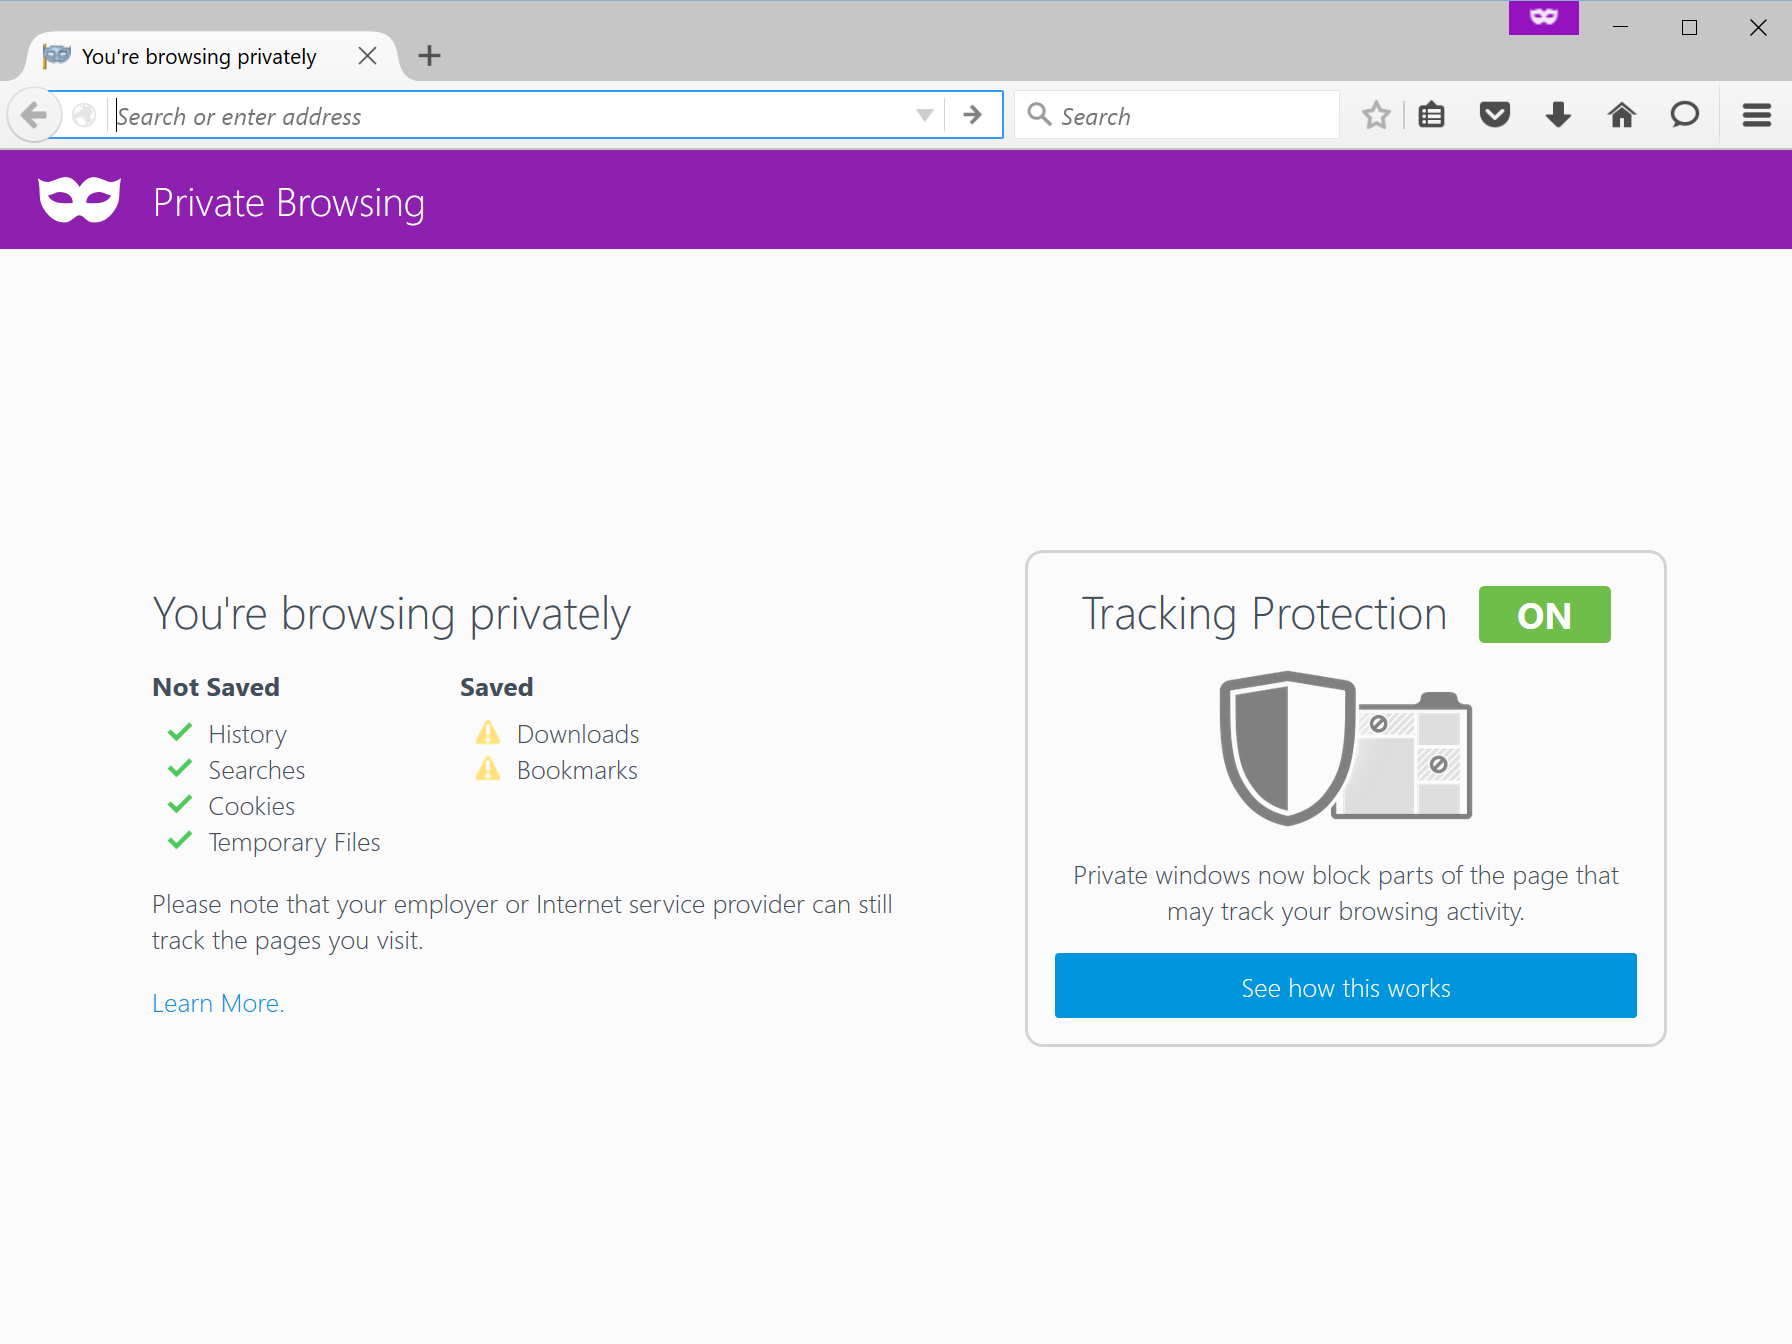 Firefox Now Offers a More Private Browsing Experience - The Mozilla Blog